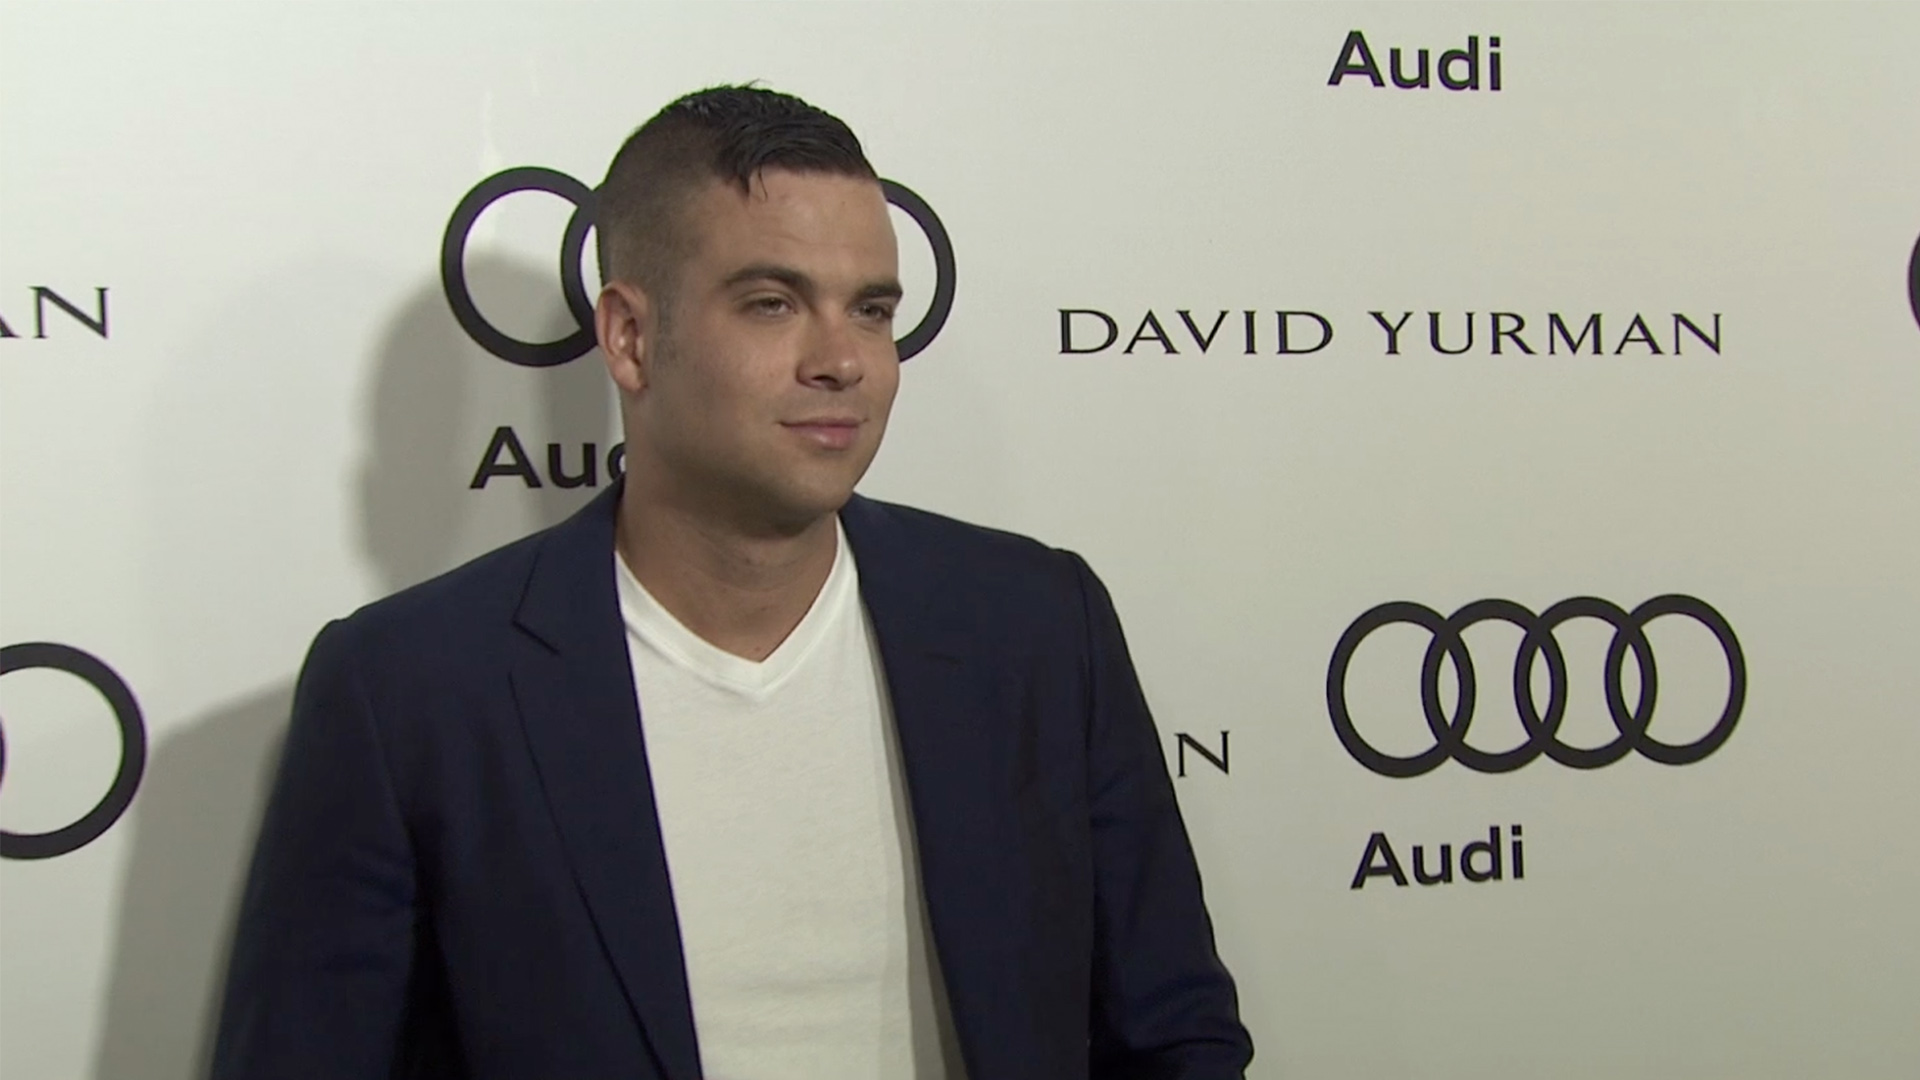 Mark Salling Arrested for Child Porn: Inside the Glee Star's Big Break and Troubled Past